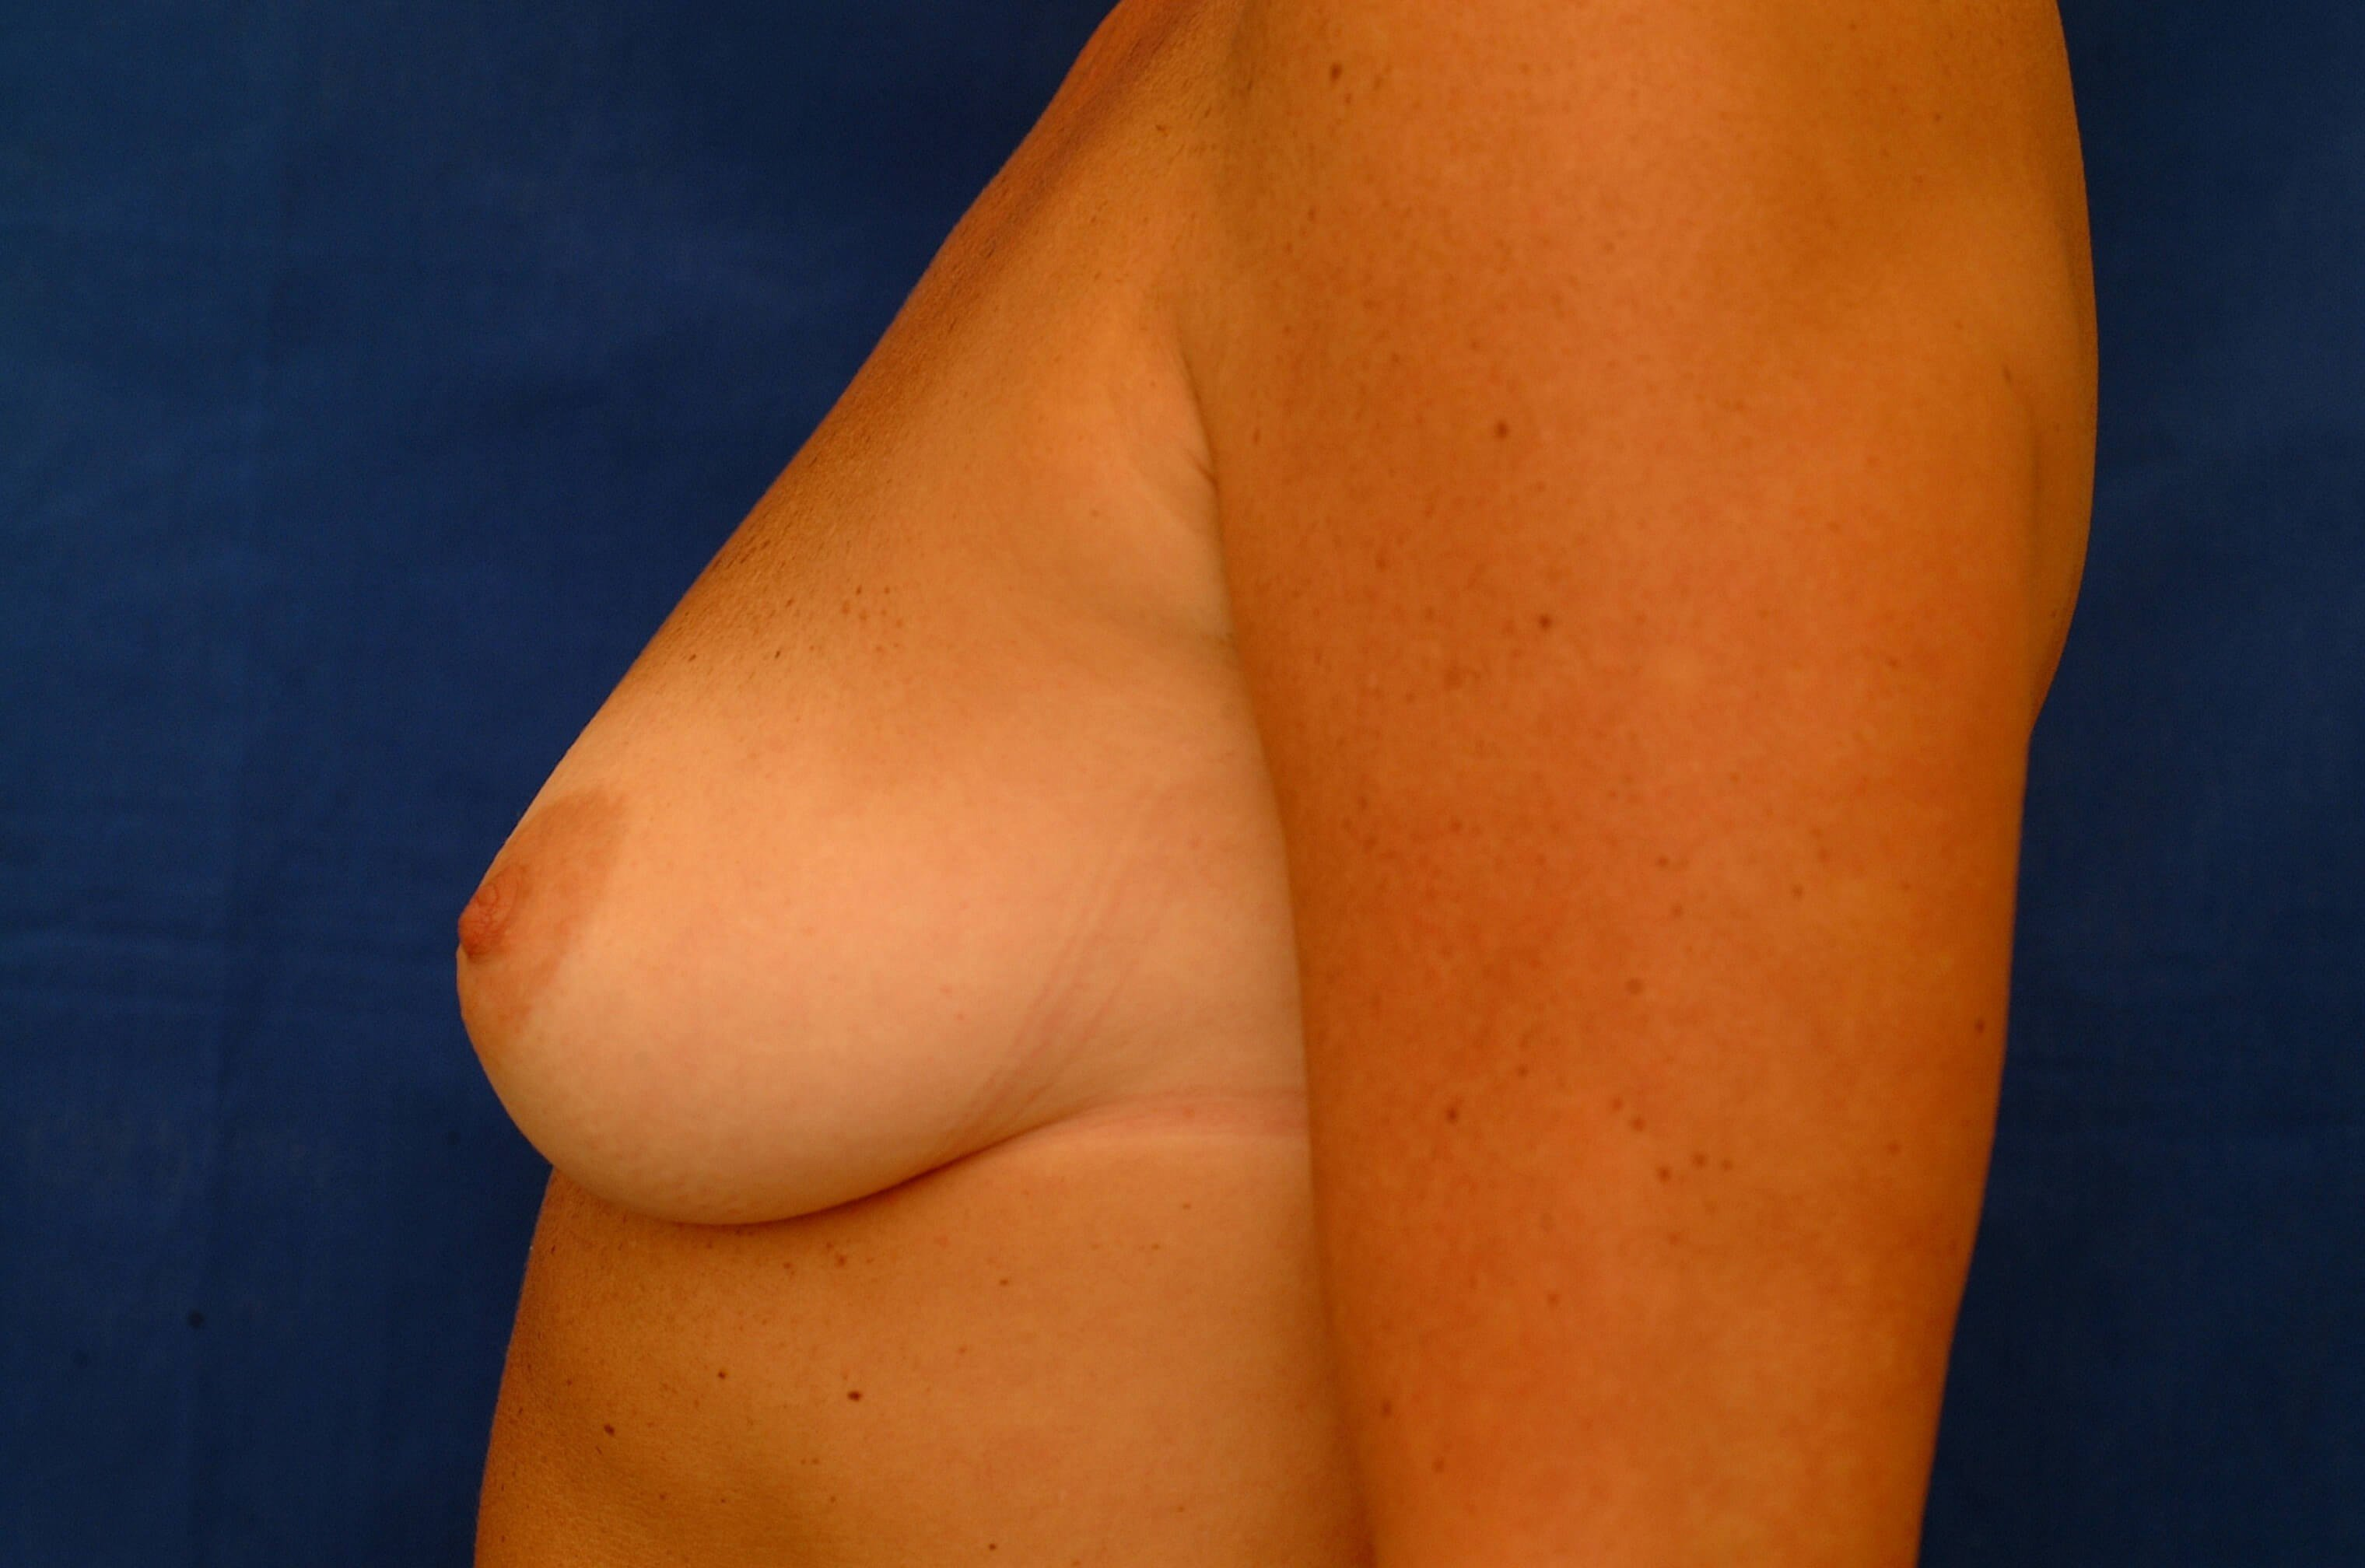 Newport Beach Breast Aug Side View Before